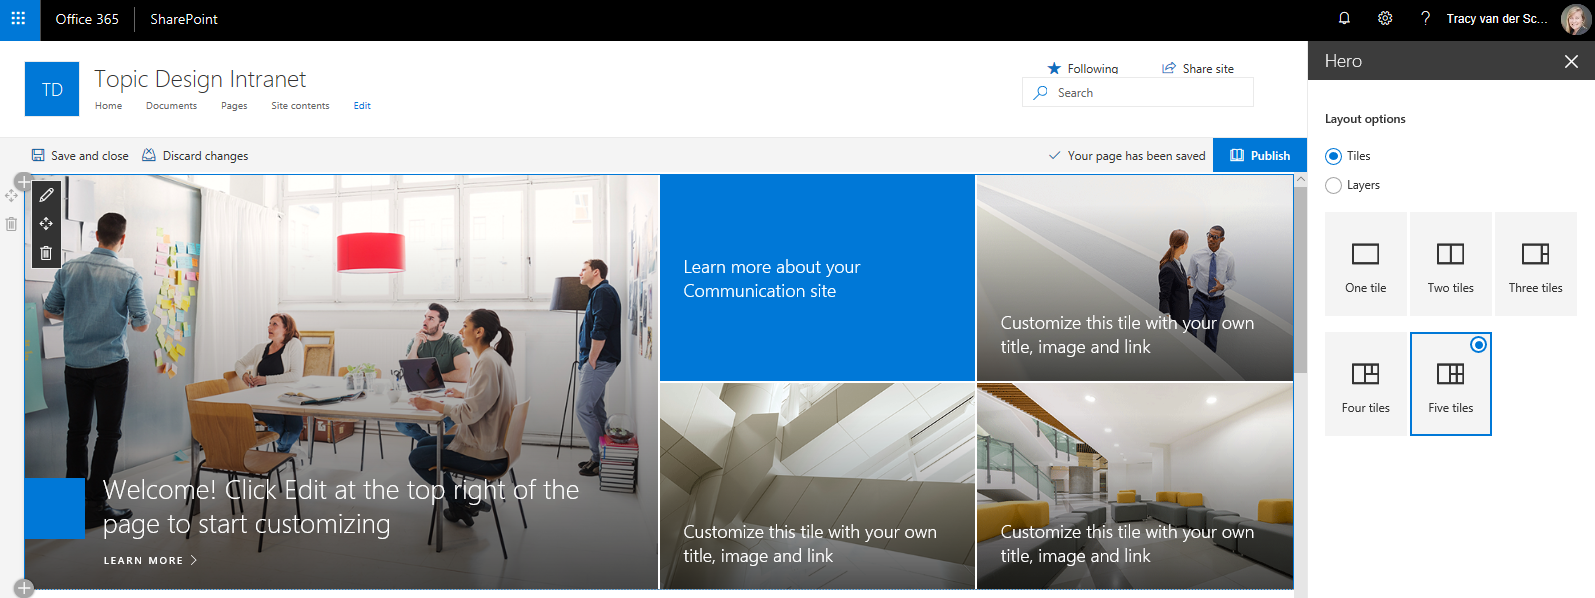 Microsoft365 Day 90 – A closer look at the 'super' hero web part in